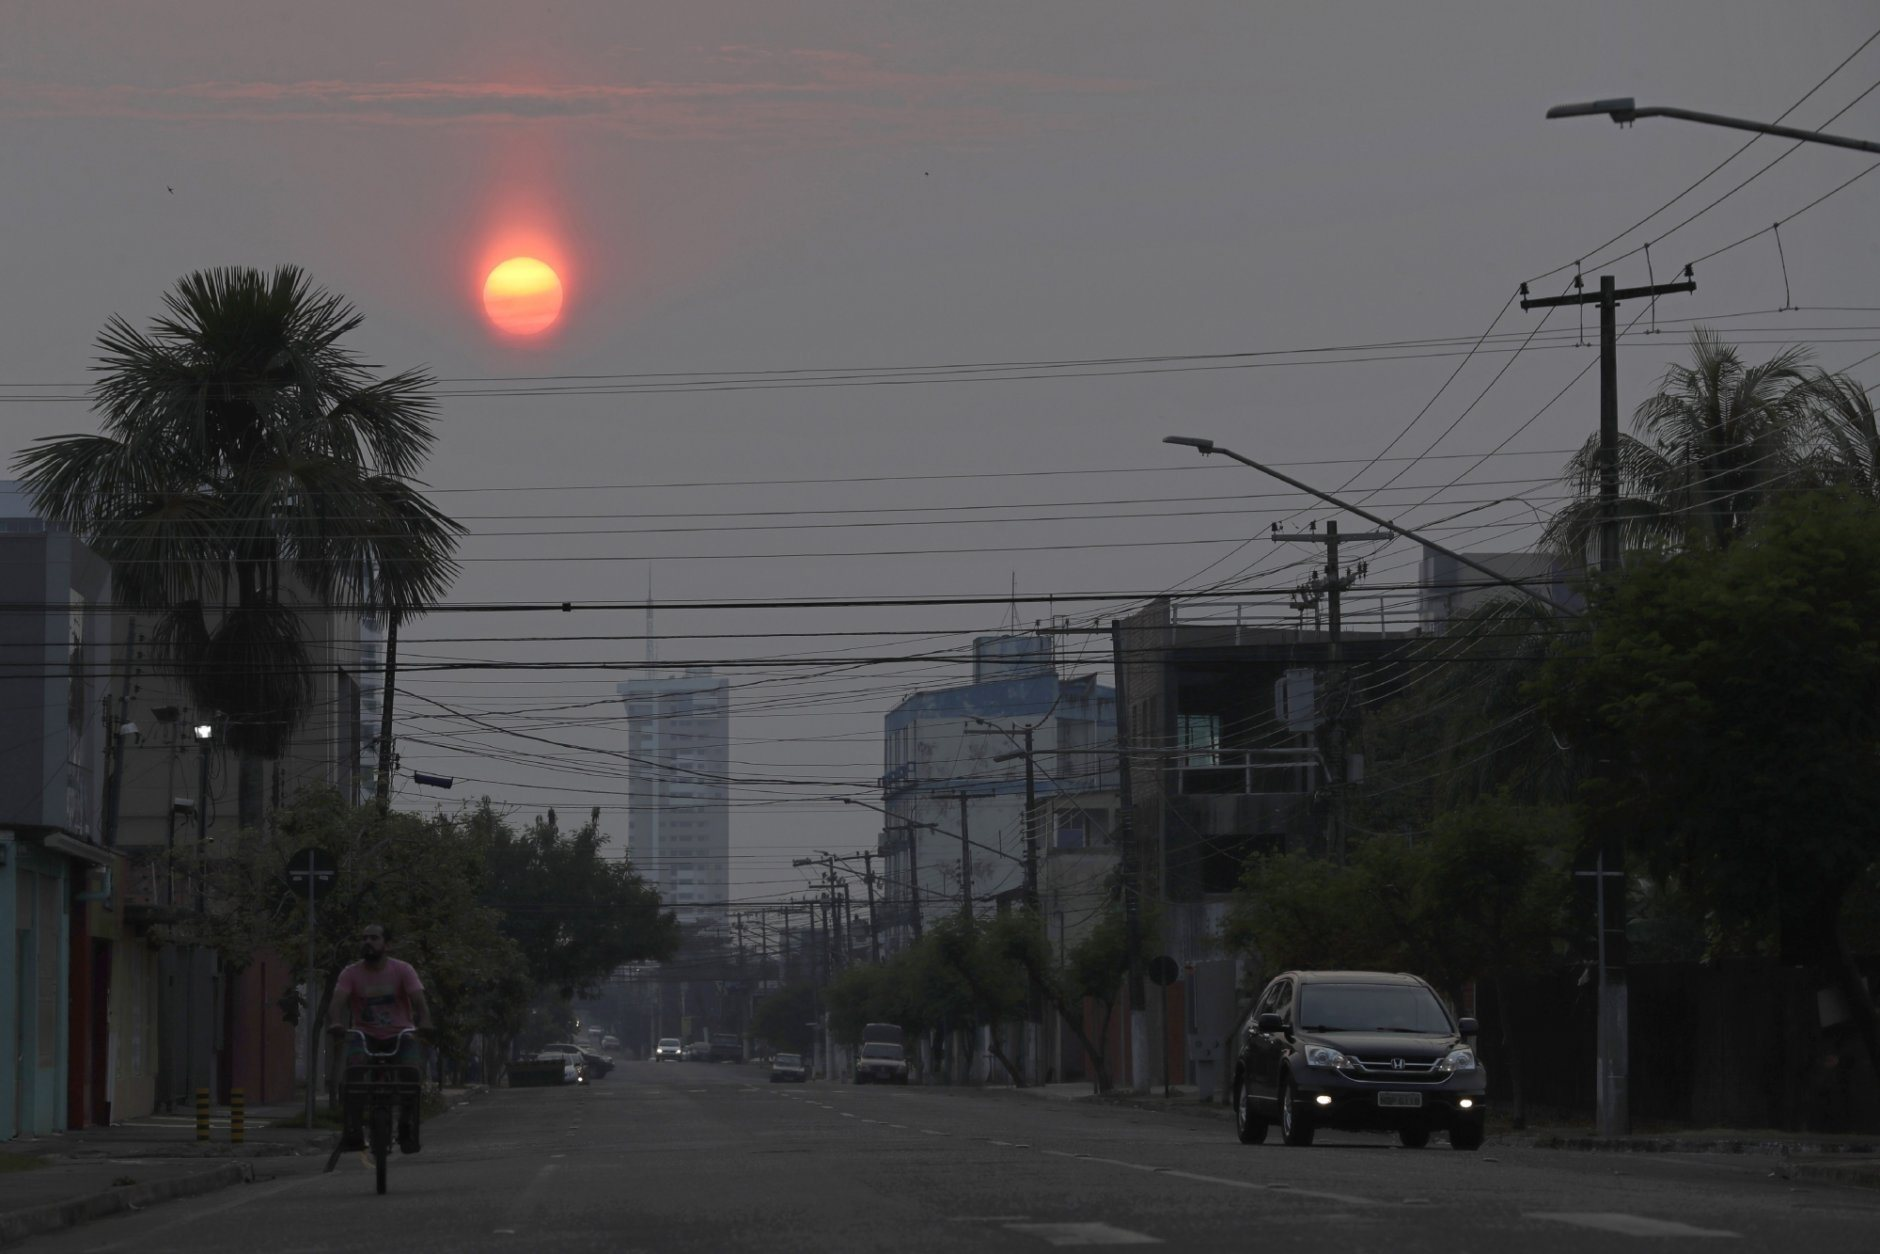 The sun, dimmed by the pall of smoke that cover the city, rises in the city of Porto Velho,  Rondonia state, Brazil, Saturday, Aug. 24, 2019. Brazil says military aircraft and 44,000 troops will be available to fight fires sweeping through parts of the Amazon region. The defense and environment ministers have outlined plans to battle the blazes that have prompted an international outcry as well as demonstrations in Brazil against President Jair Bolsonaro's handling of the environmental crisis. (AP Photo/Eraldo Peres)